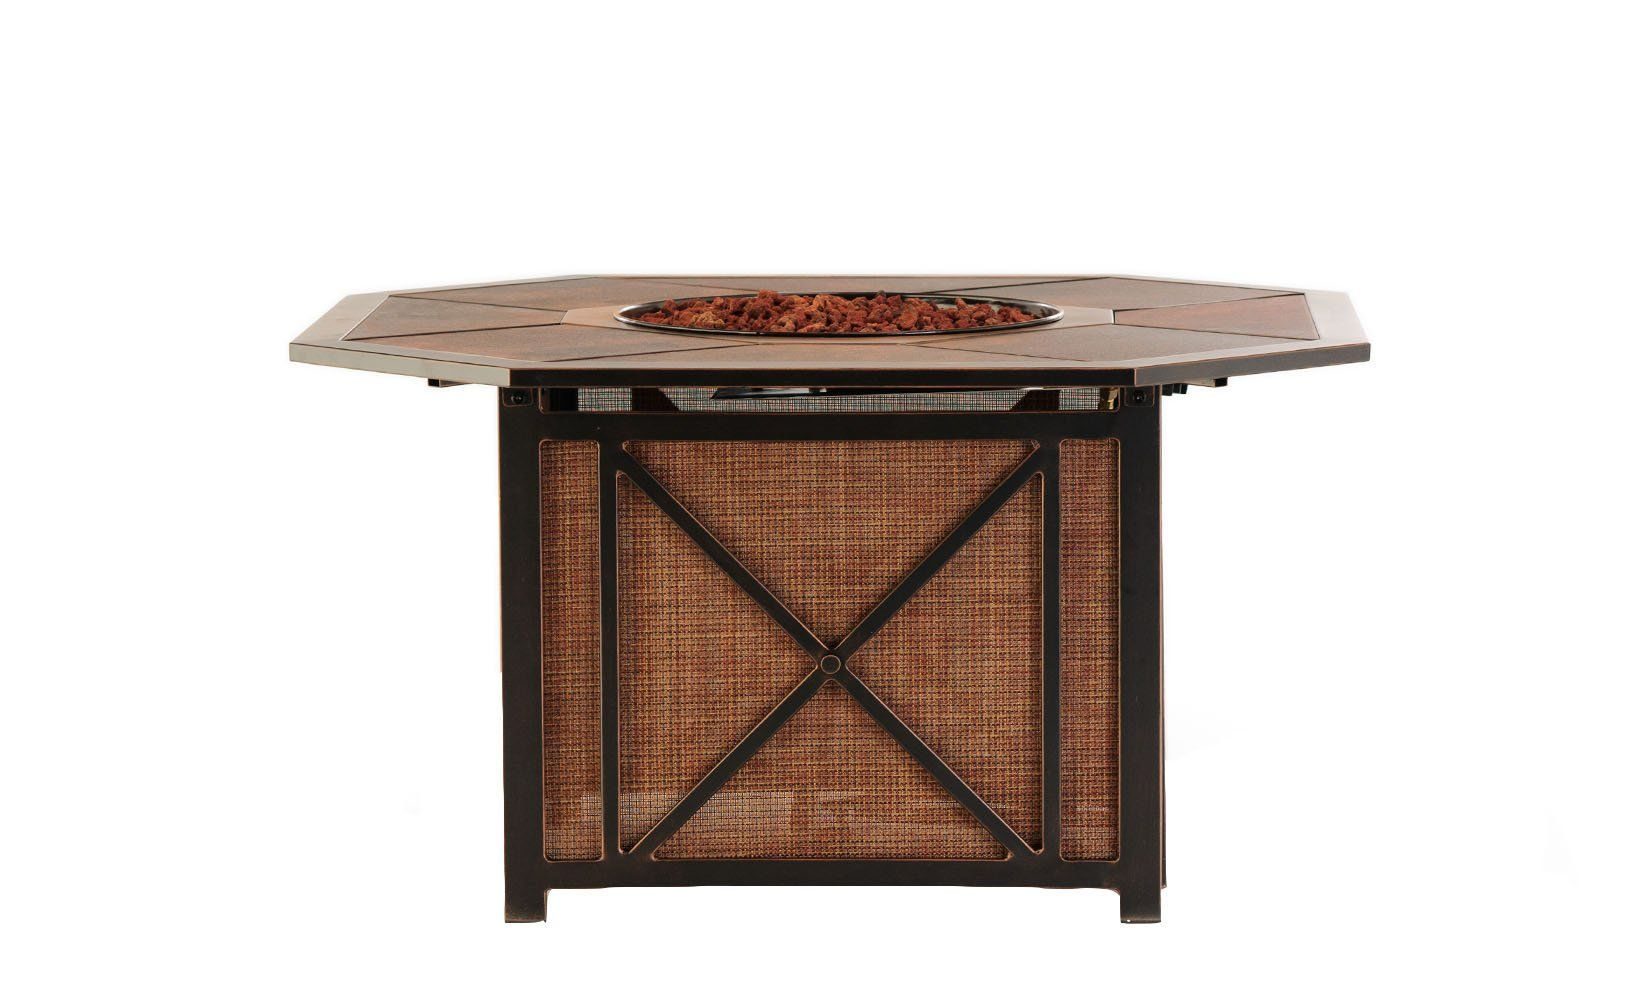 Haywood Fire Pit #GardenFirePitCooking